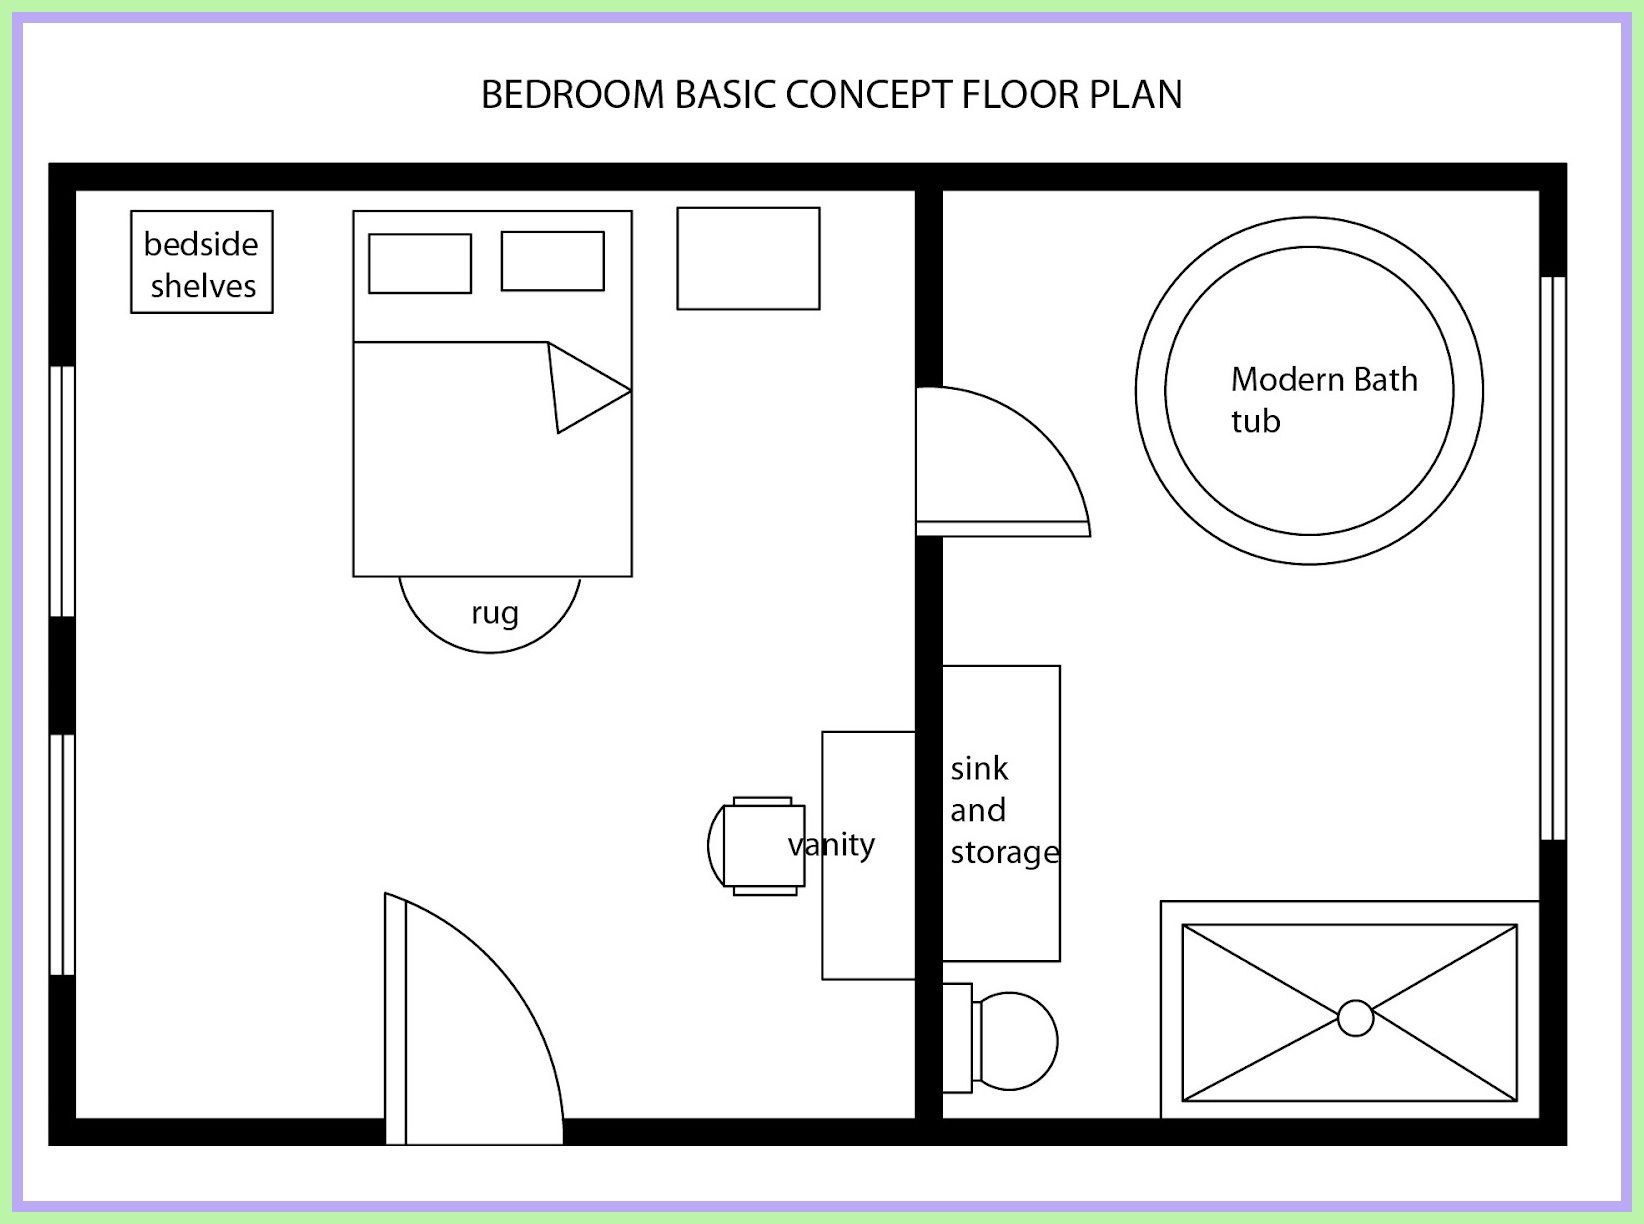 58 Reference Of Simple Master Bedroom Floor Plan Bedroom Floor Plans Master Bedroom Layout Floor Plan Design